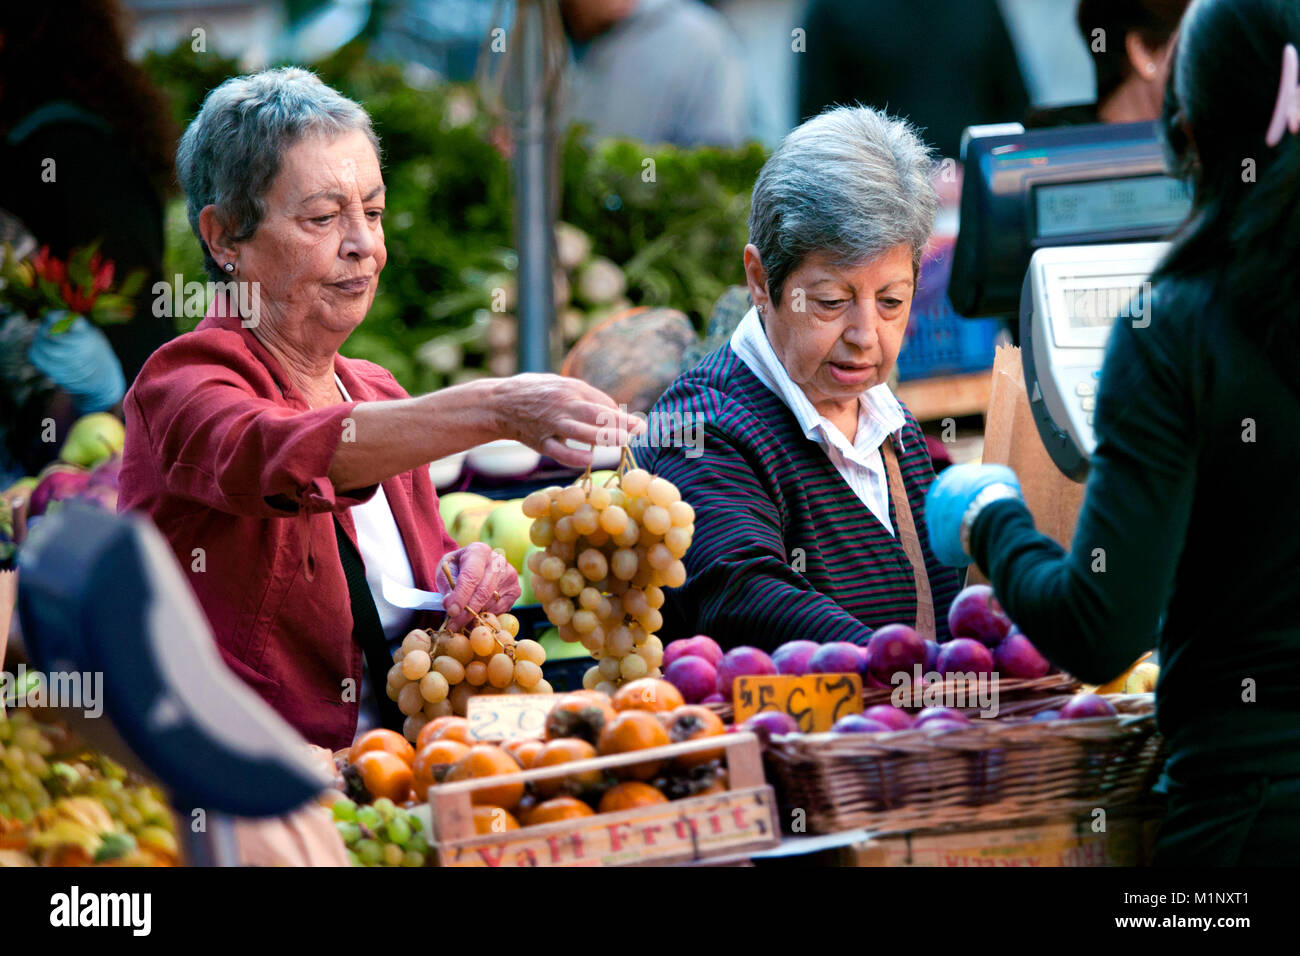 Local customer buying grapes at the Campo de' Fiori farmers market, Piazza Campo de' Fiori, Rome, Italy - Stock Image